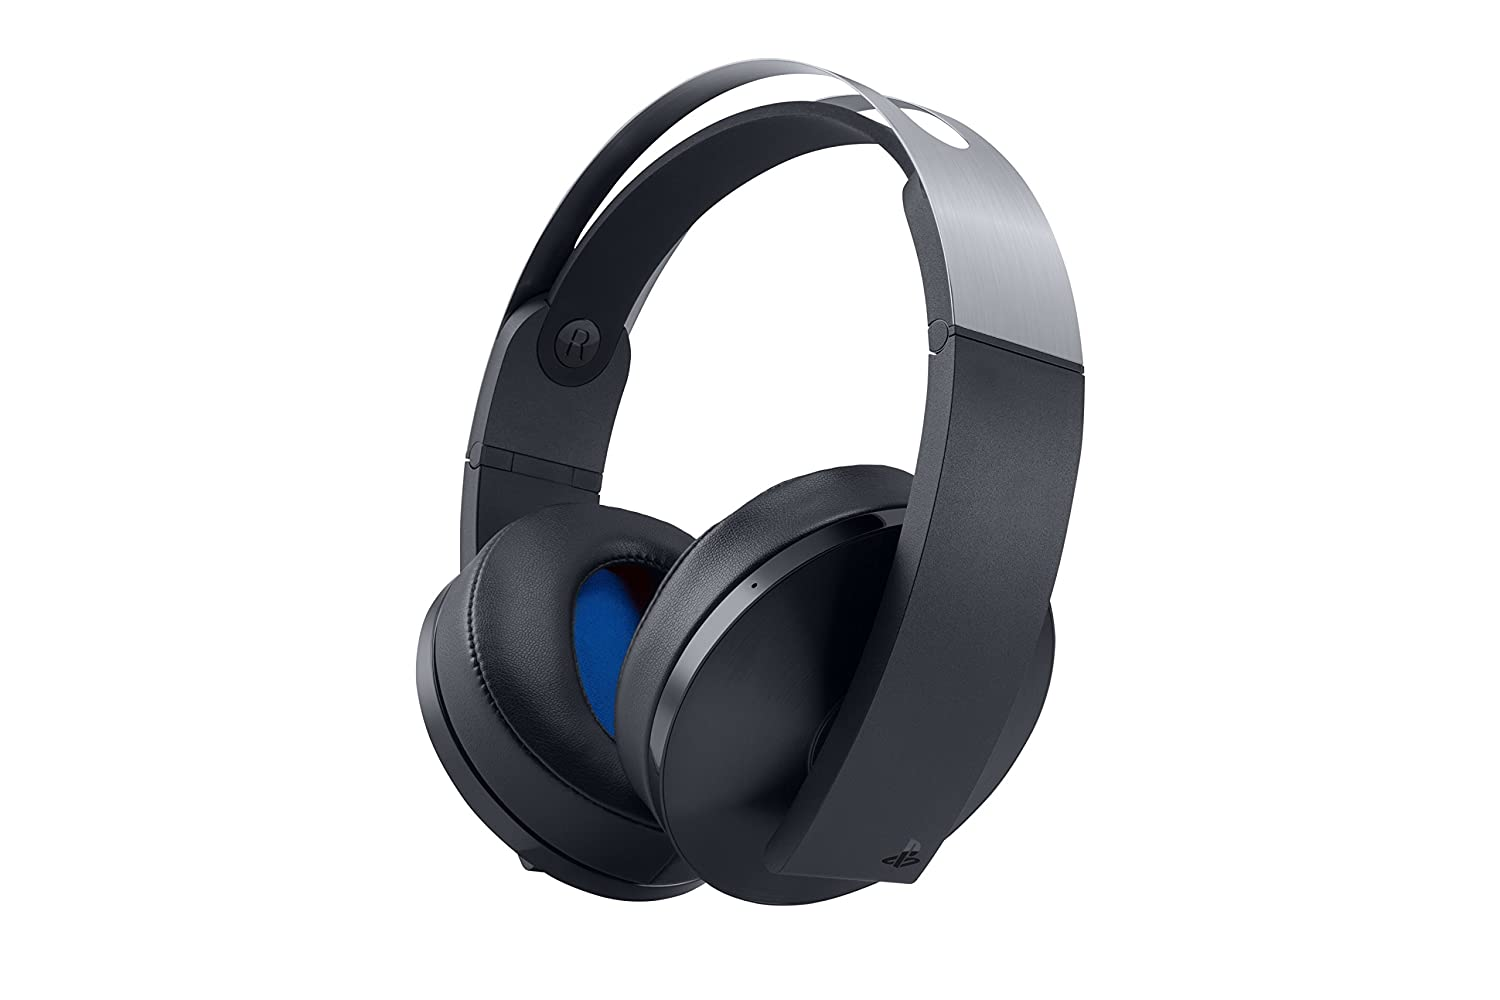 fd080eac796 PS4 PLATINUM WIRELESS HEADSET (PS4): Amazon.ae